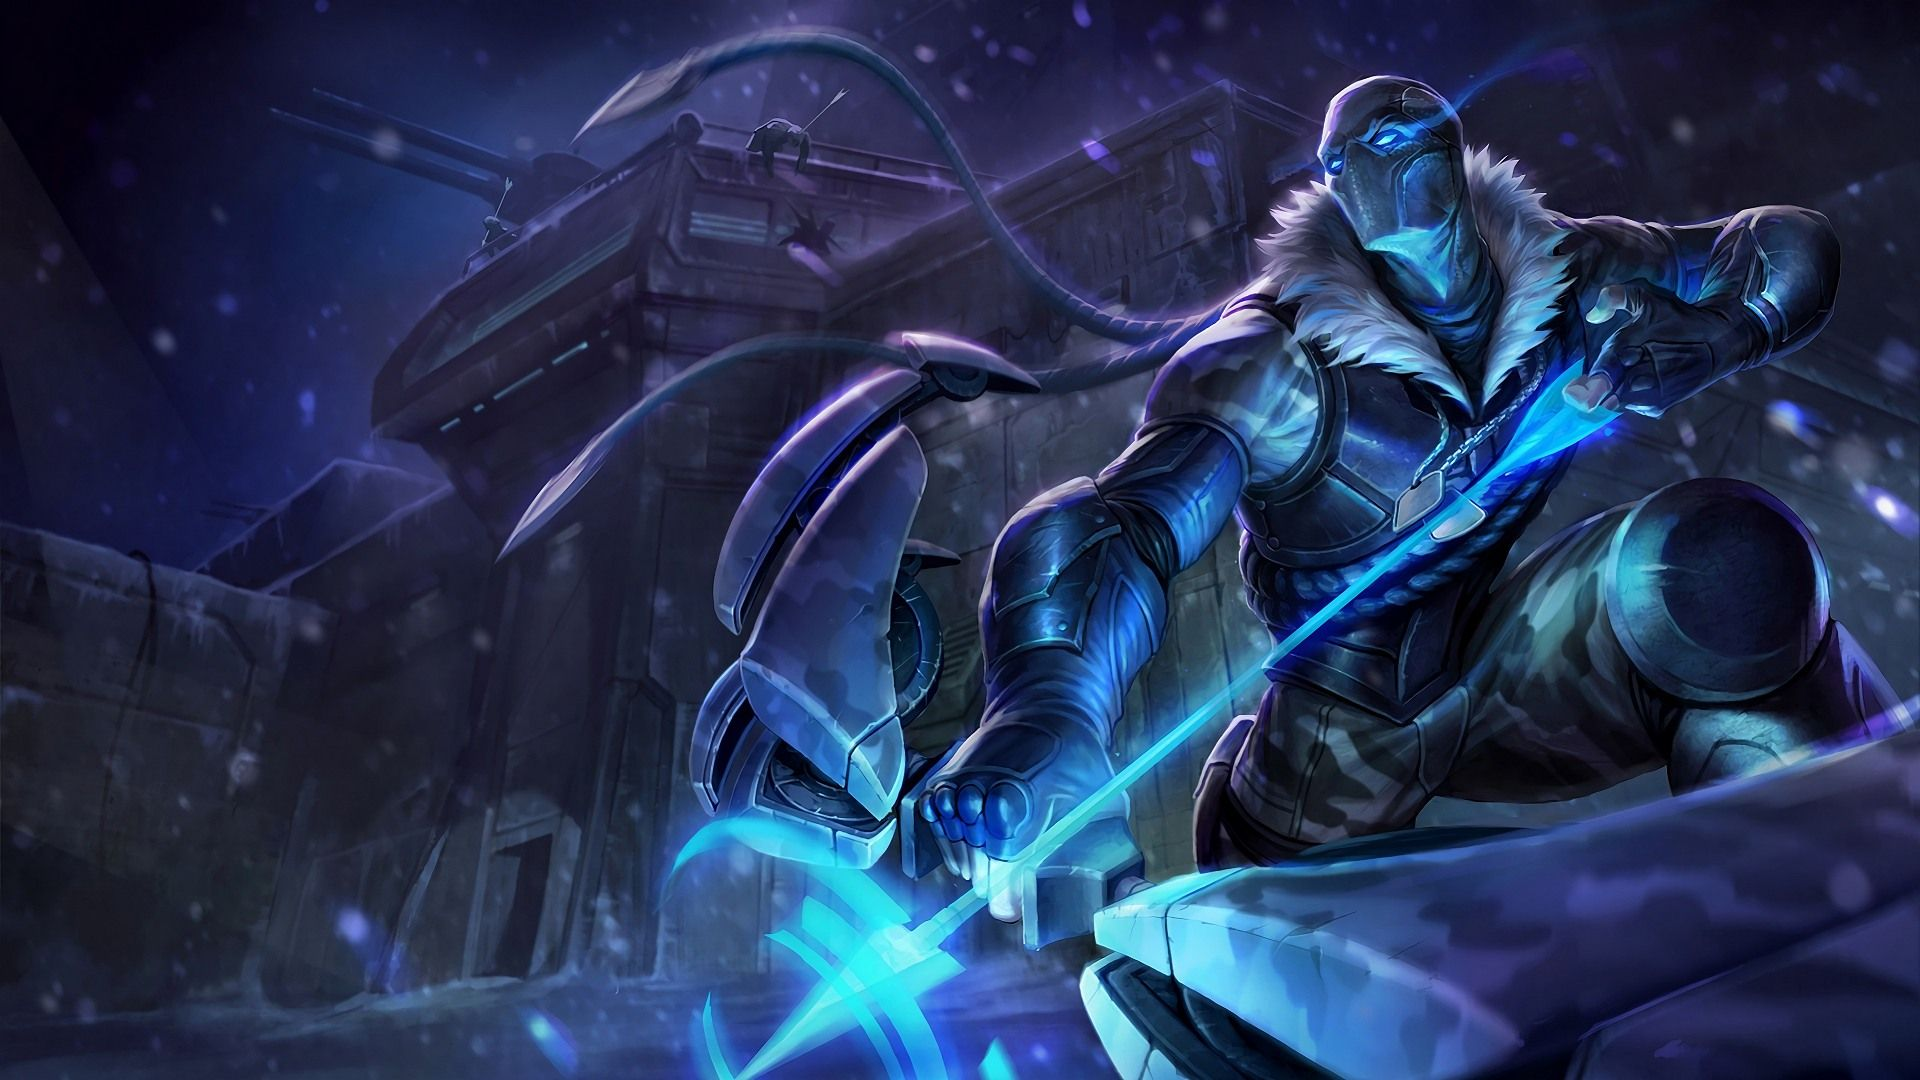 Download Wallpaper Arctic Ops Varus Skin Splash Art Full Hd For